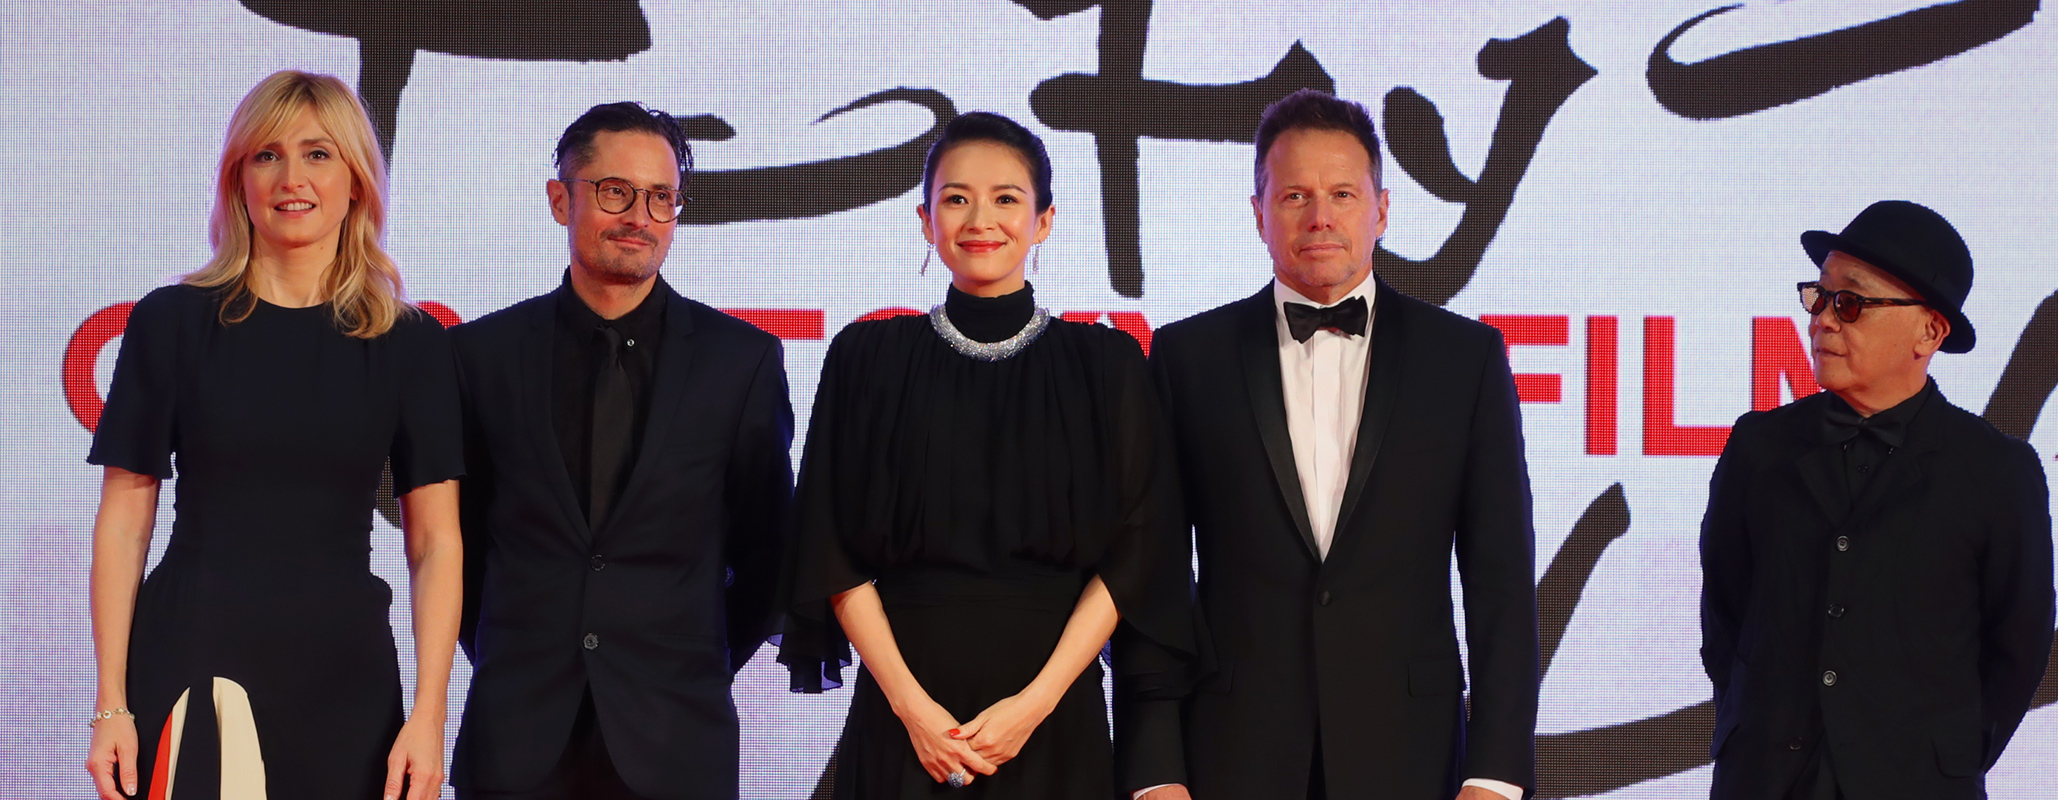 Opening event Red Carpet, Members of Competition, Jury Zhang Ziyi, Bill Gerber, Julie Gayet, Michael Noer, Ryuuiti Hiroki